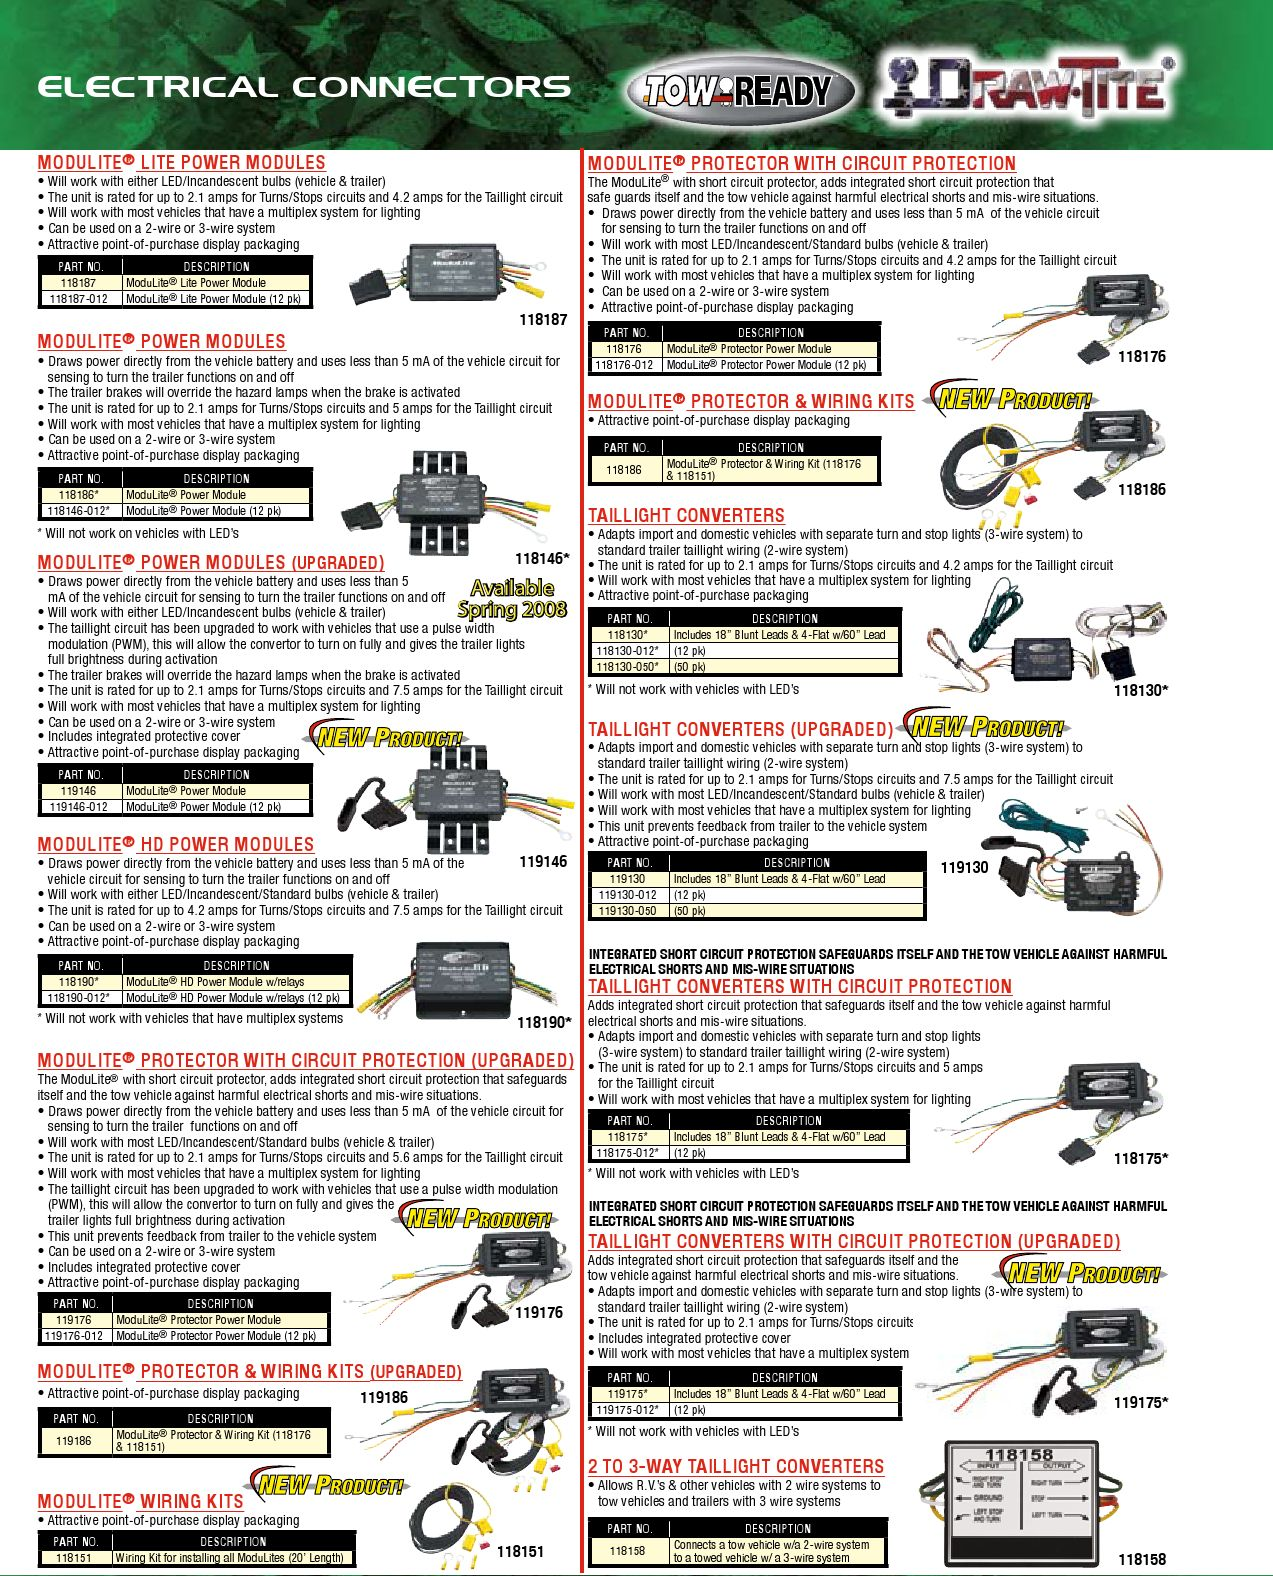 Towready Electical Connectors By Croft Supply And Distribution Issuu Towed Vehicle Wiring Kit